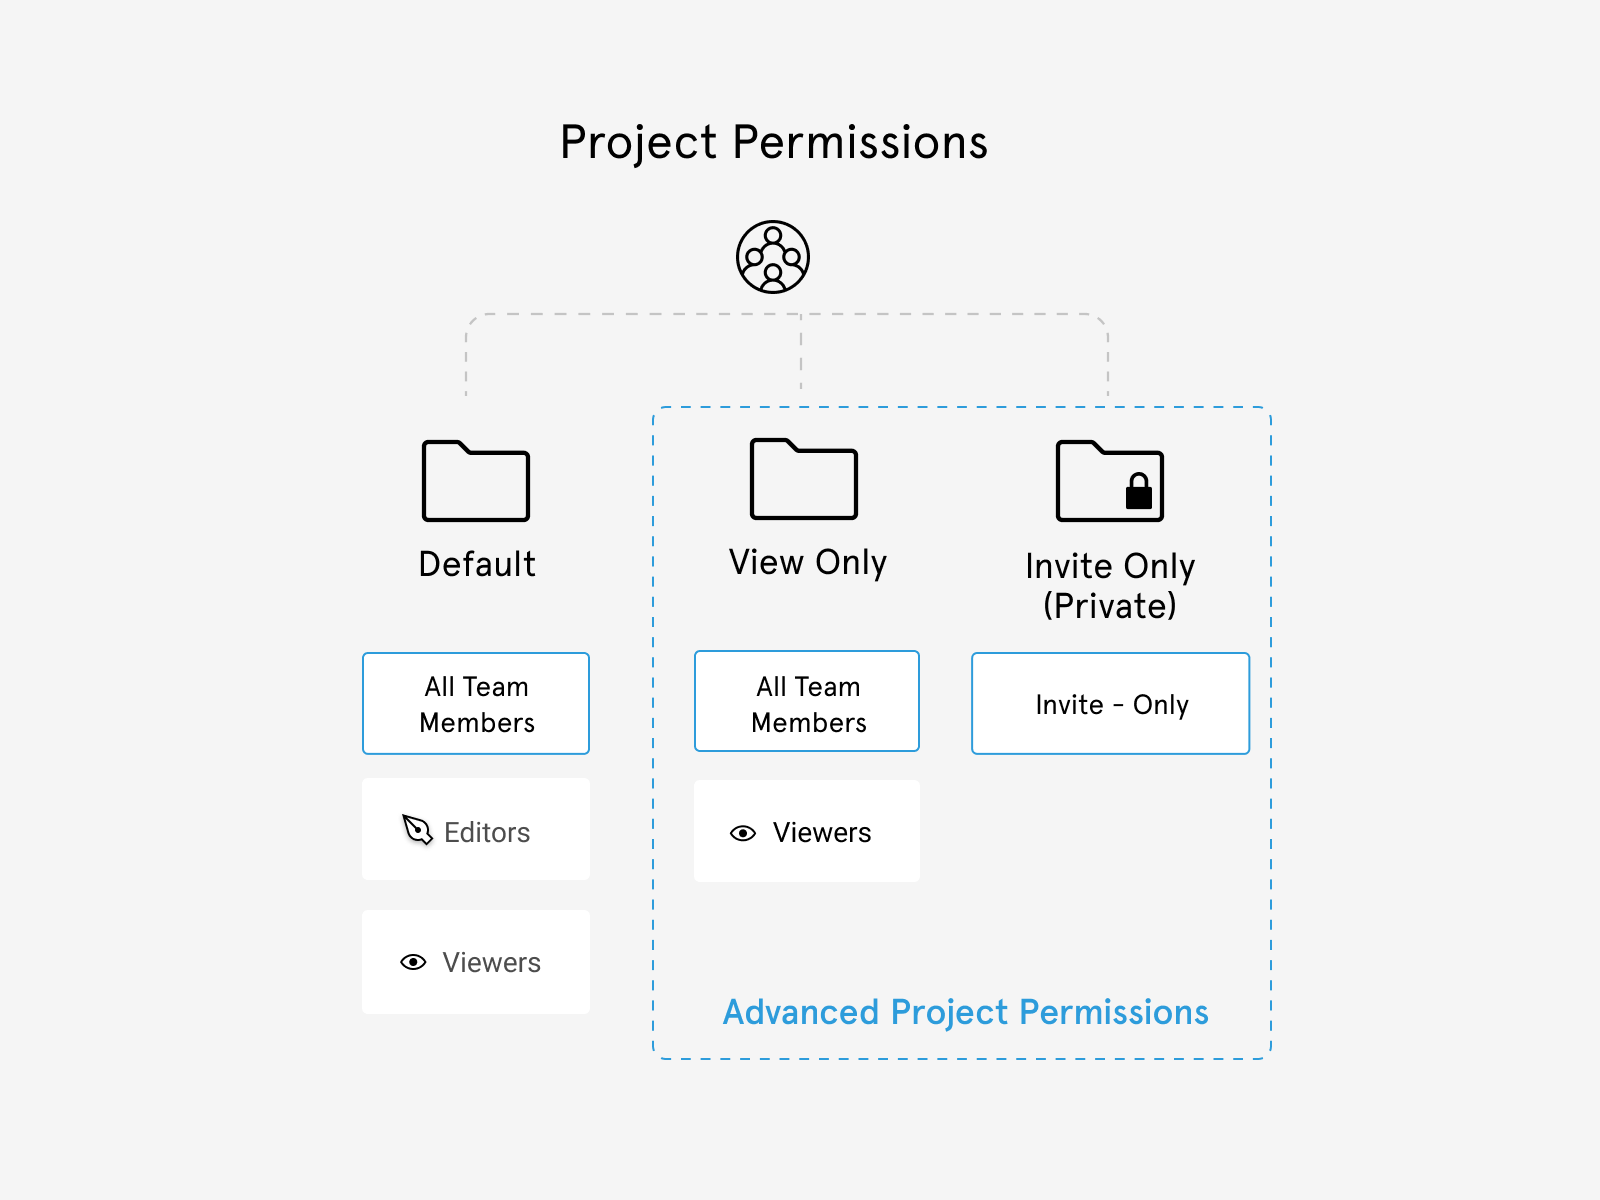 Illustration showing how advanced project permissions work differently to default project permissions